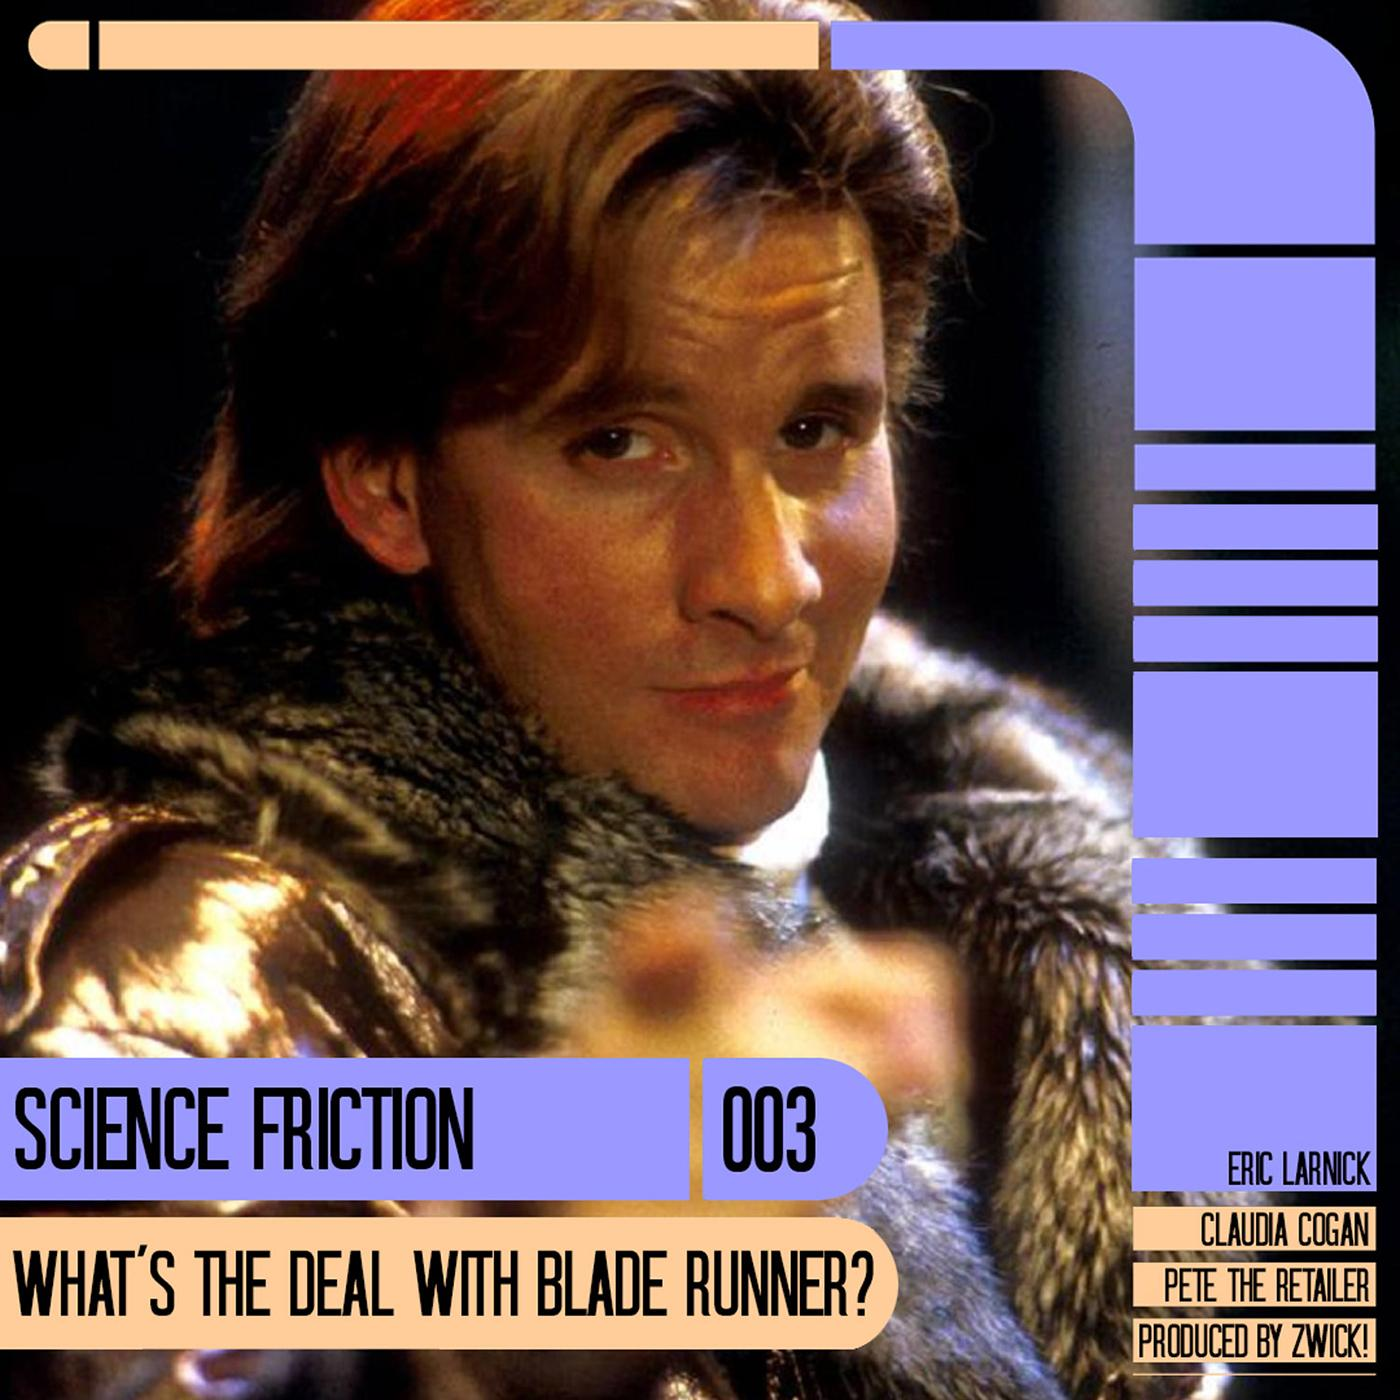 Science Friction 003: What's The Deal With Blade Runner?